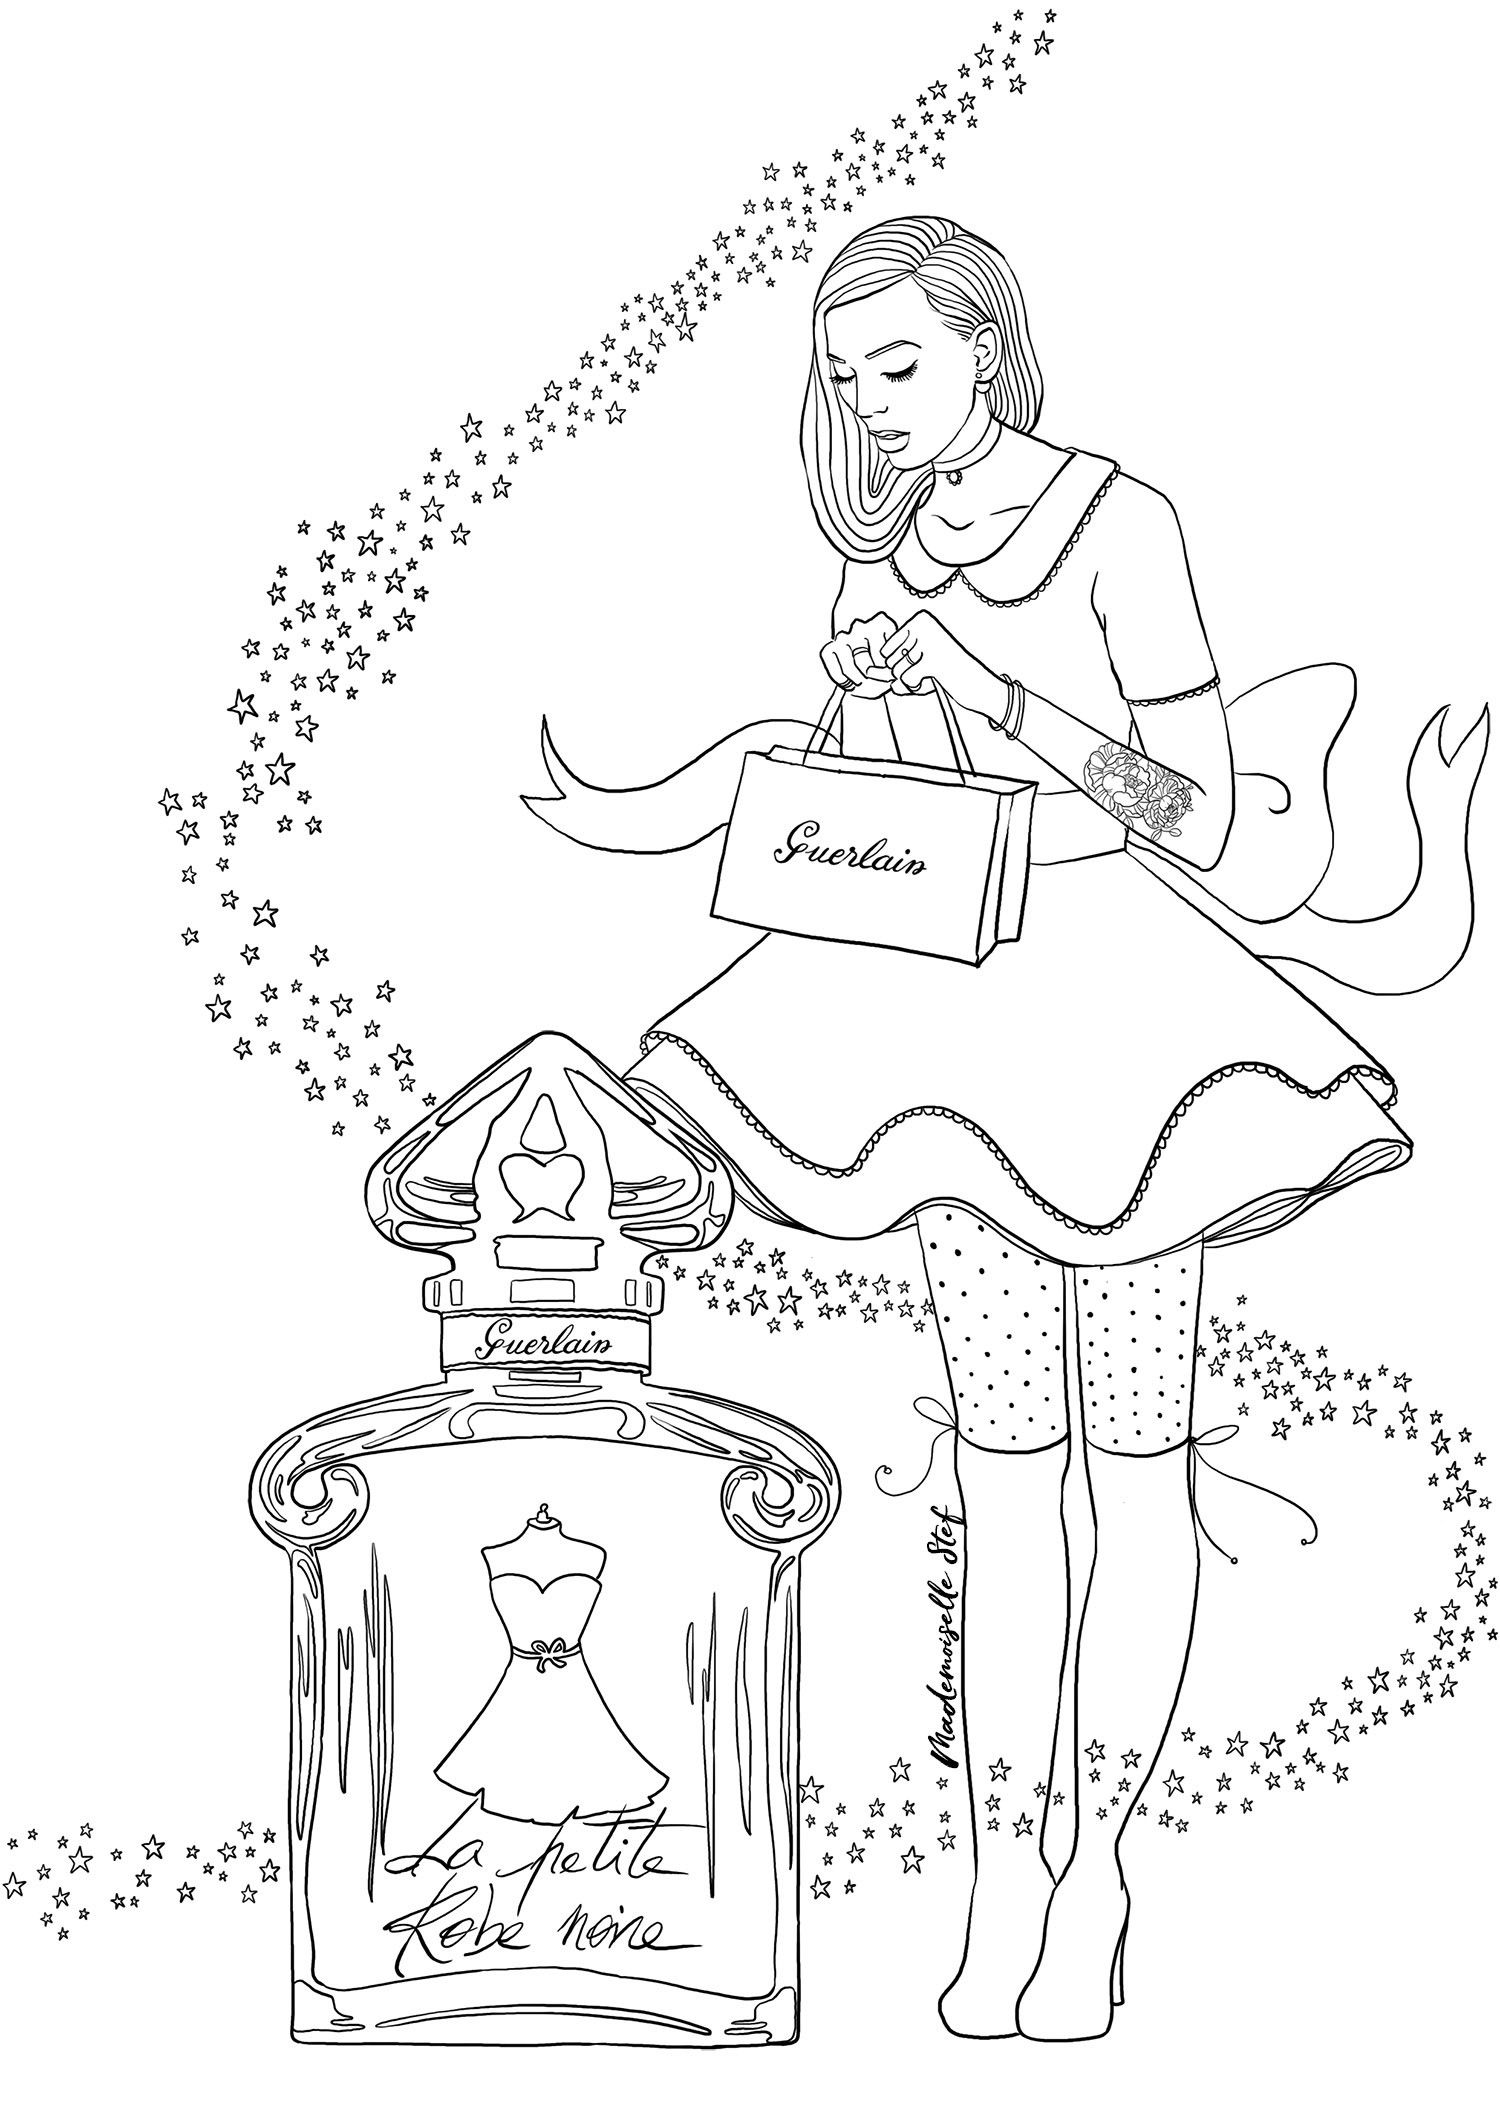 Flamingo Coloring Page Flamingo Coloring Page Coloring Pages